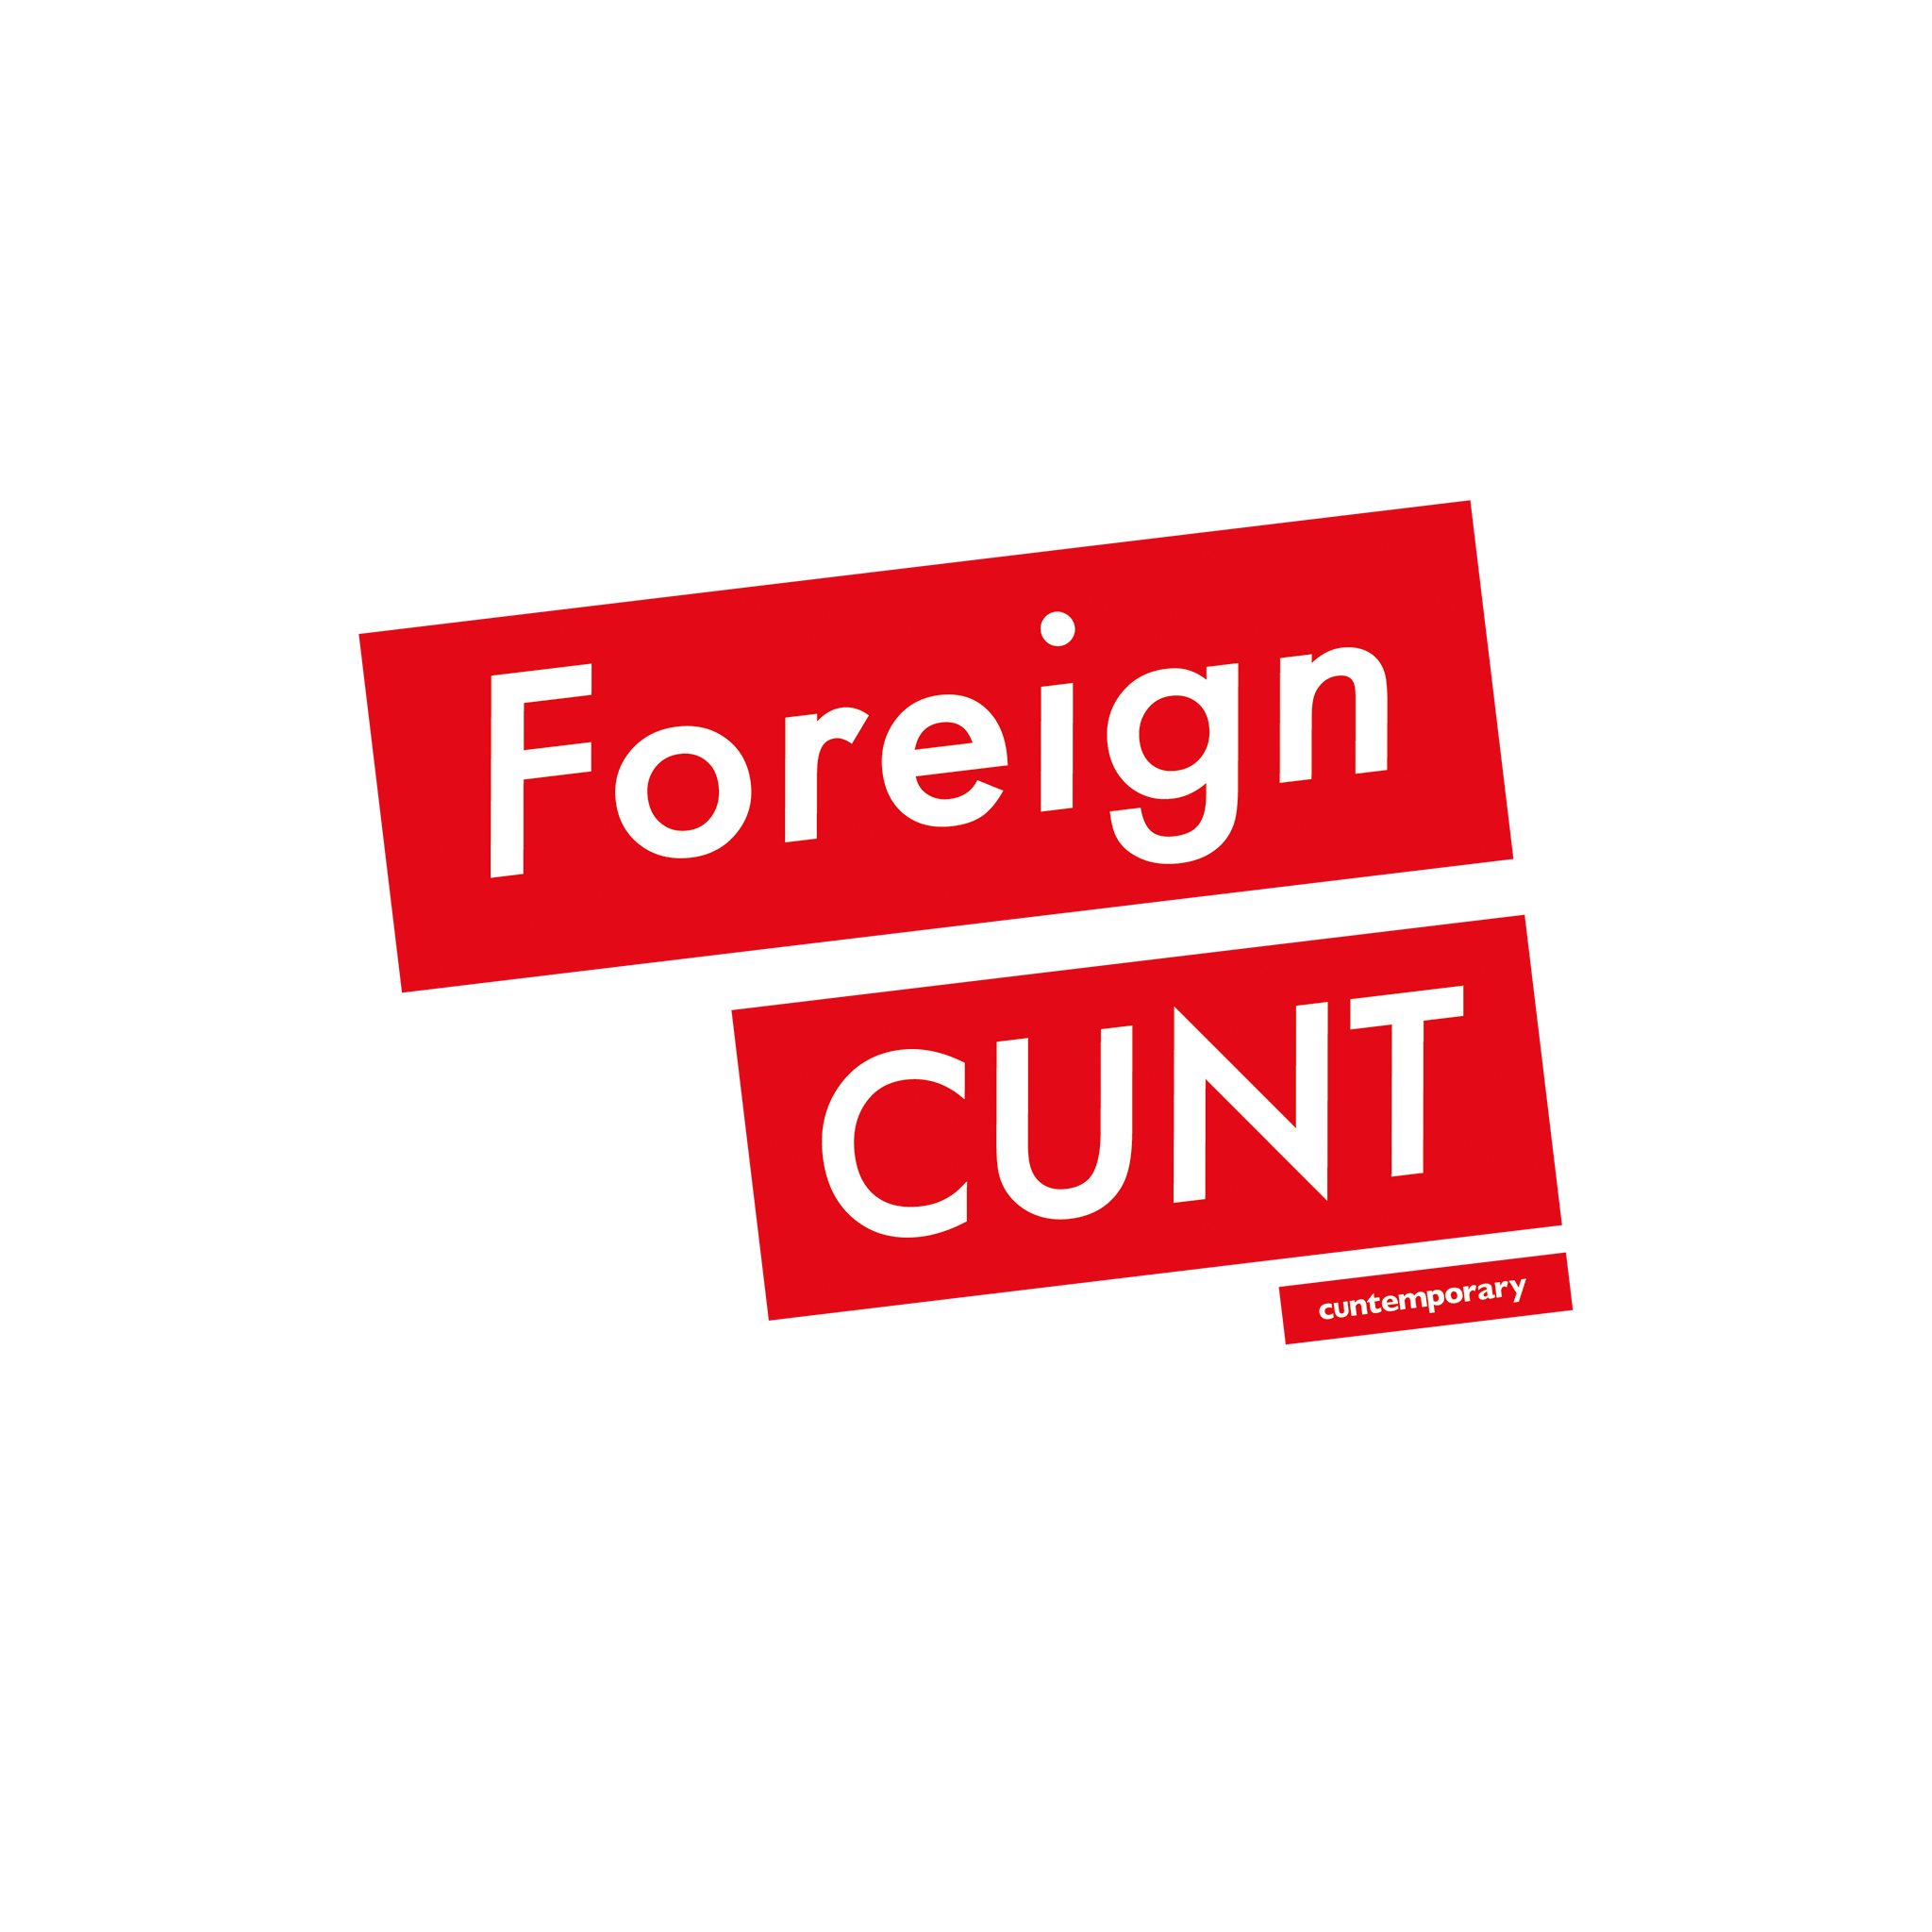 foreign cunt t-shirt | cuntemporary